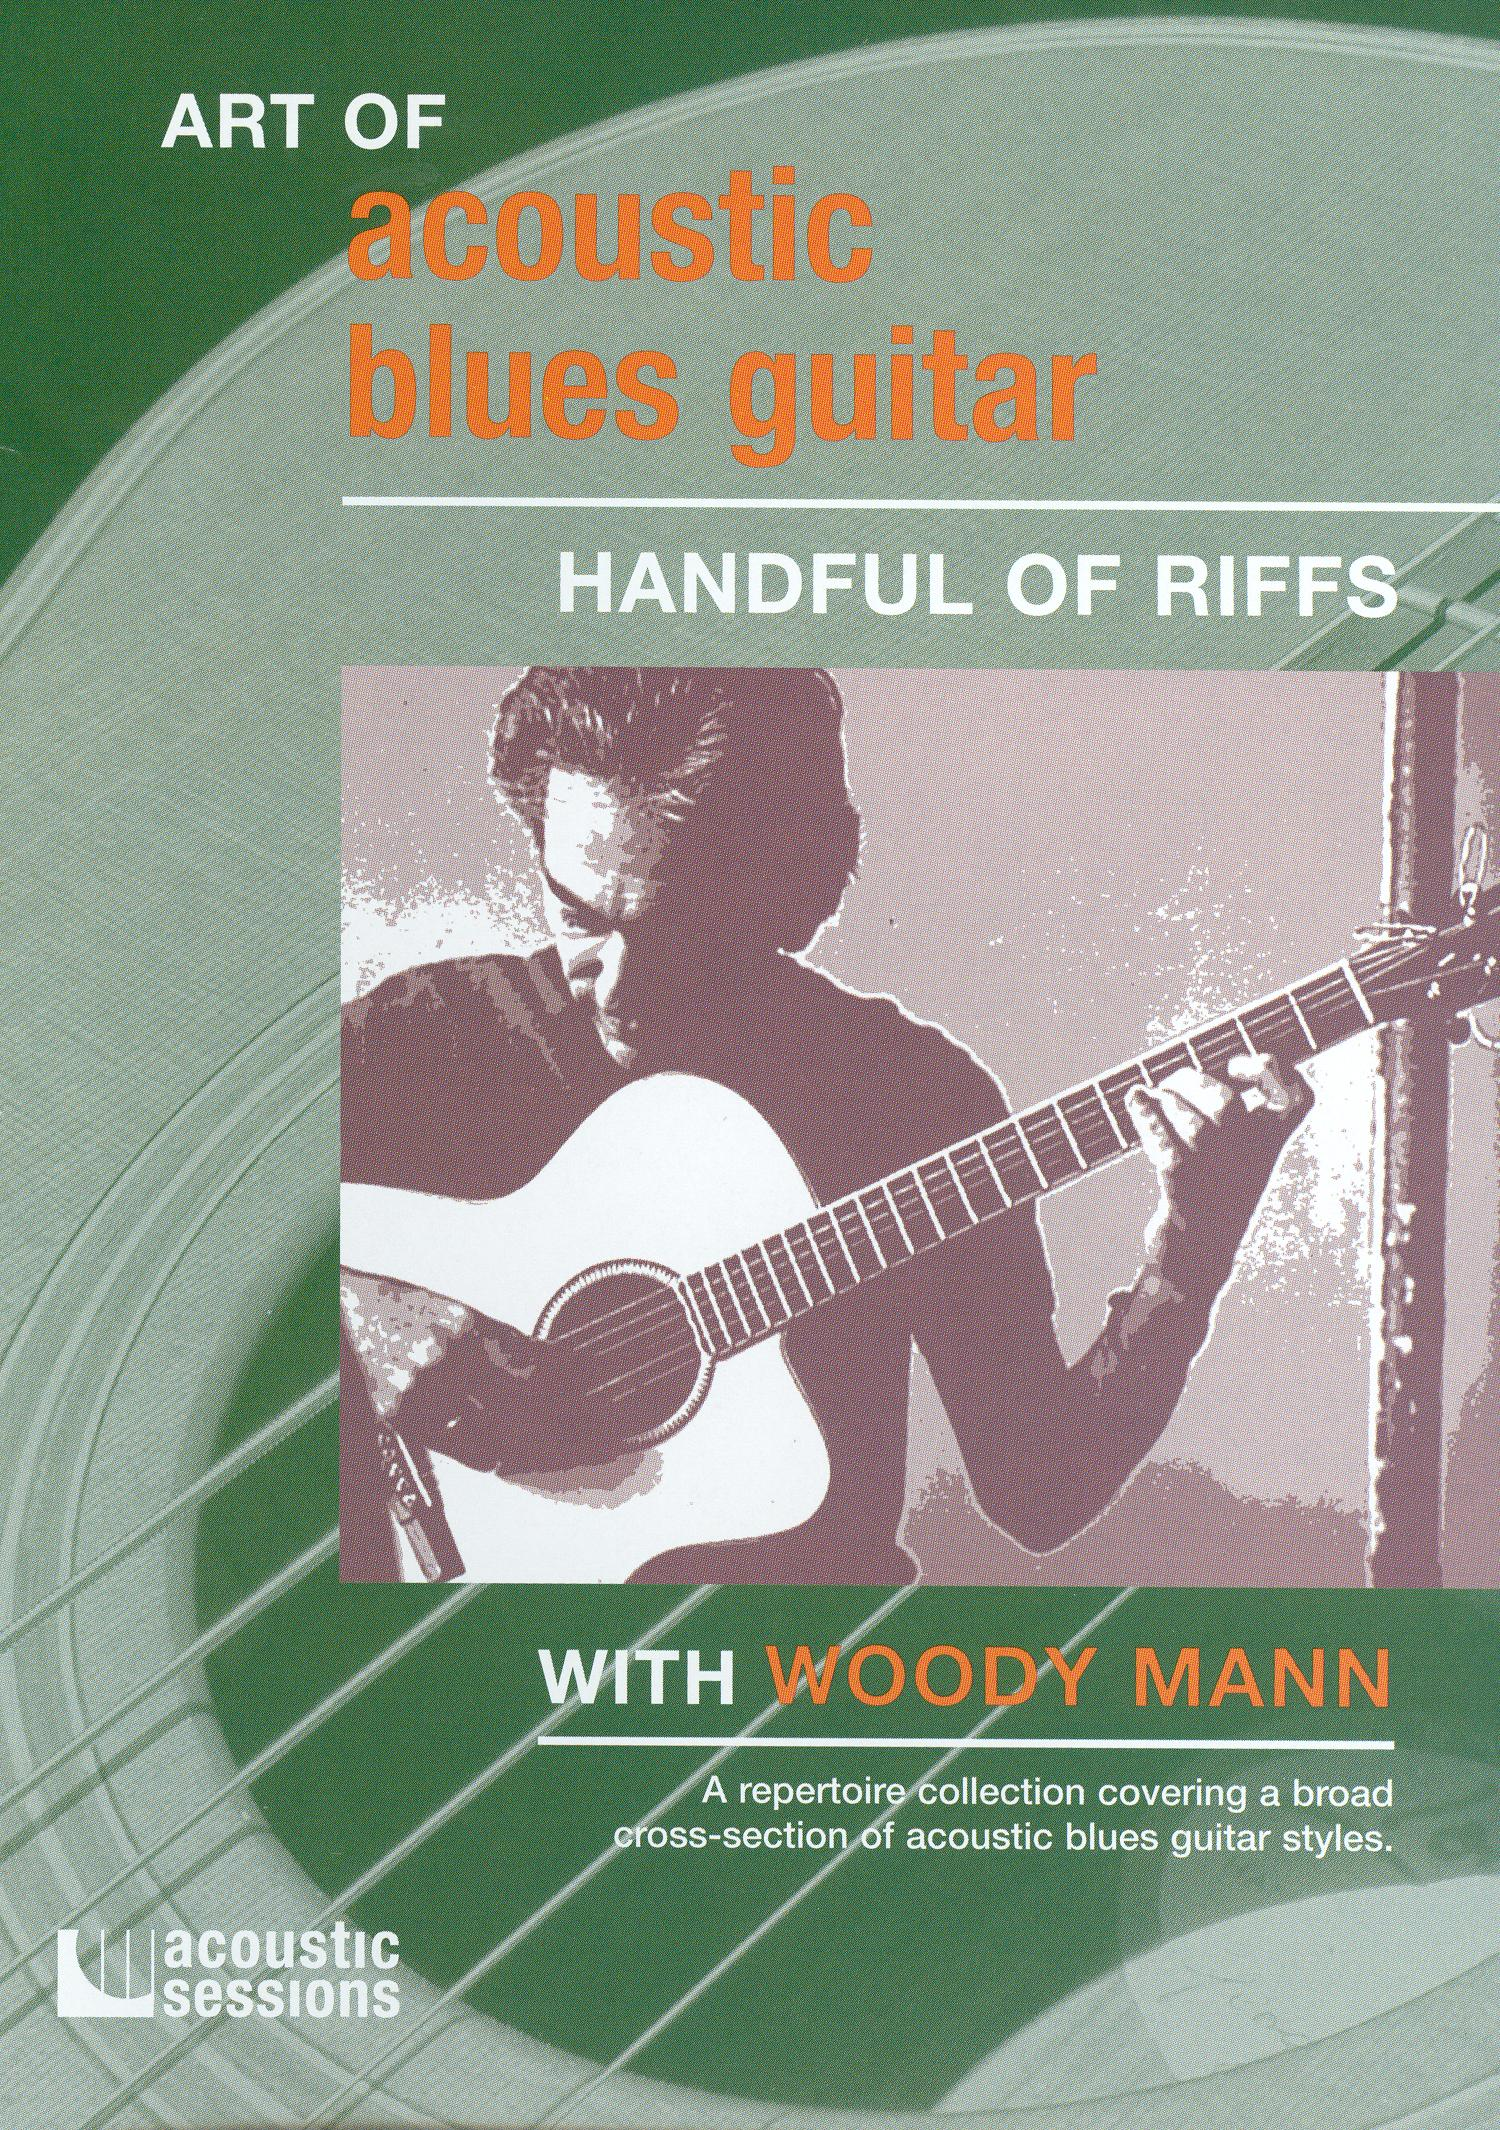 The Art of Acoustic Blues Guitar: Handful of Riffs